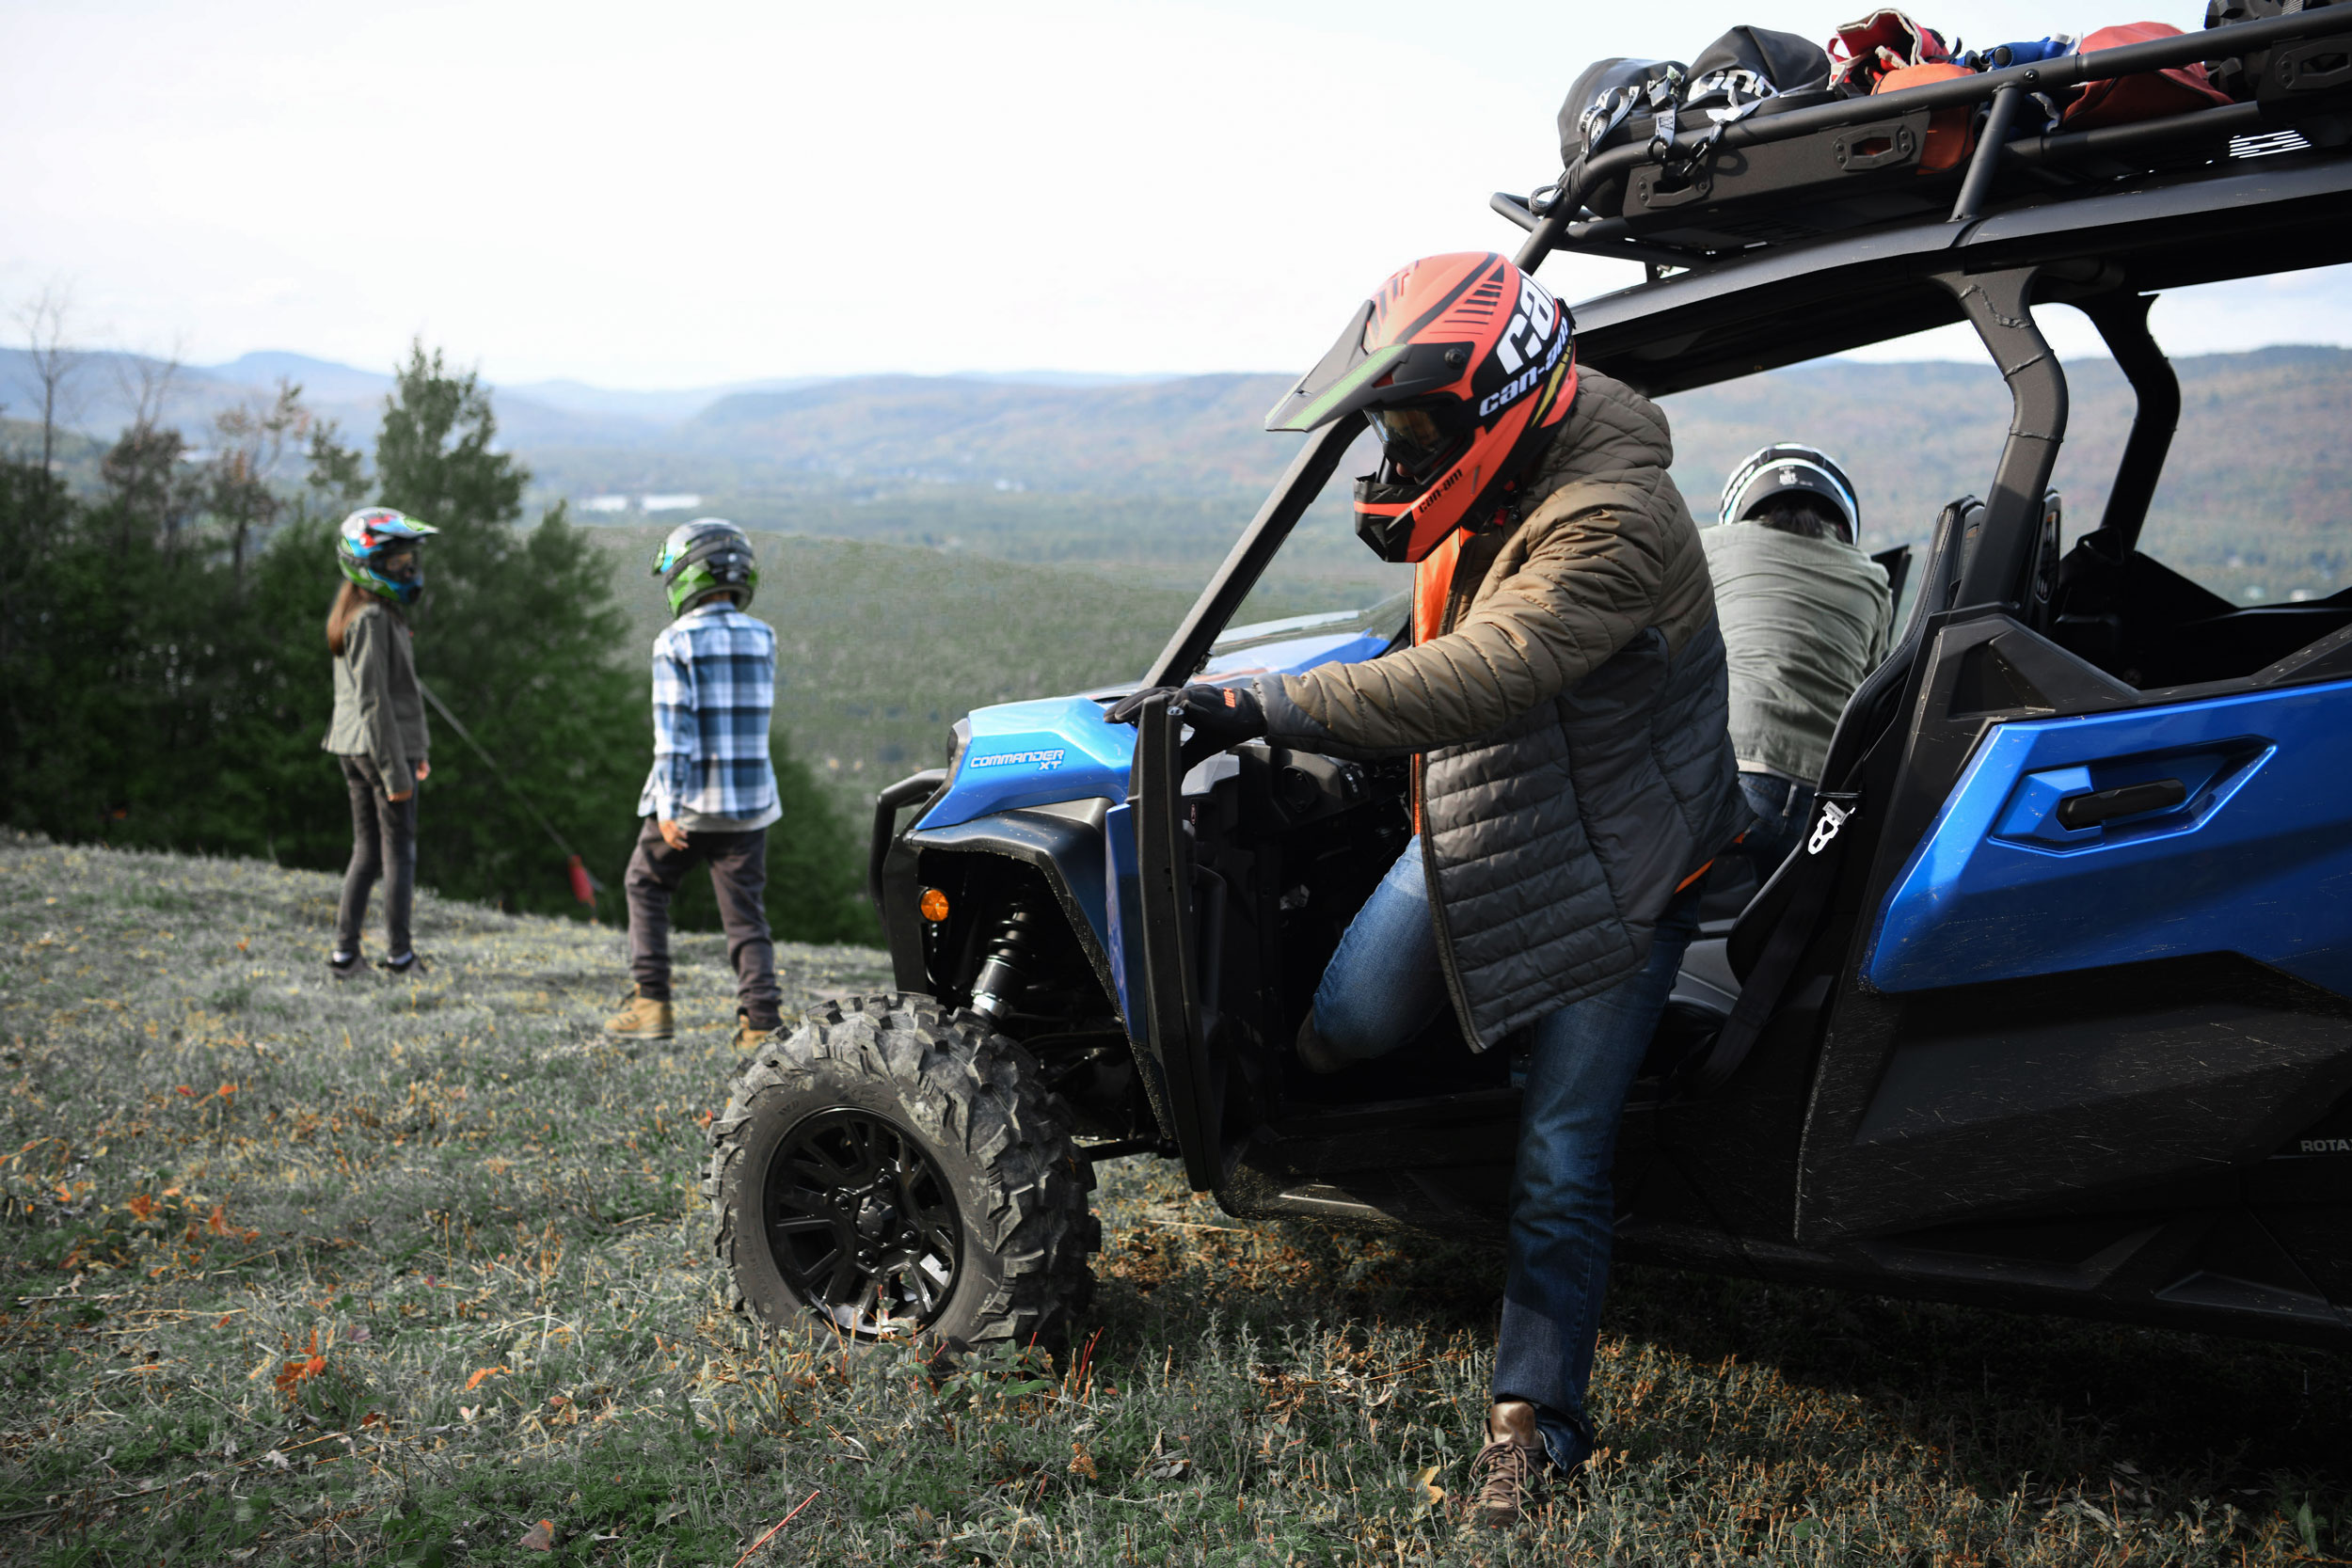 Choosing the best ATV or SxS/UTV for families with kids